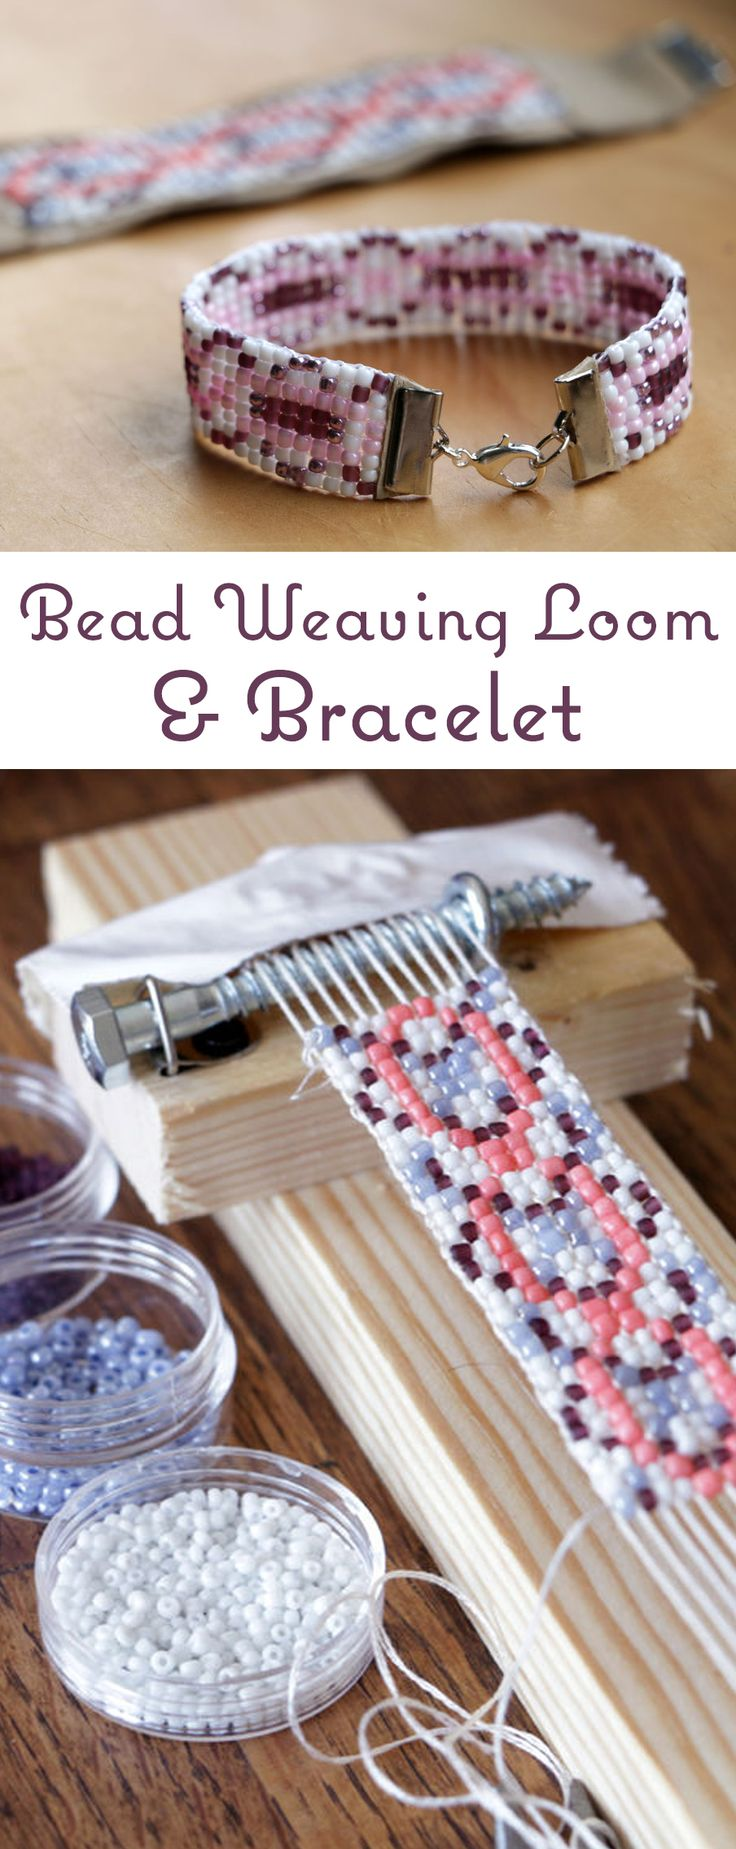 7 Best Books for Learning Beadwork - thesprucecrafts.com